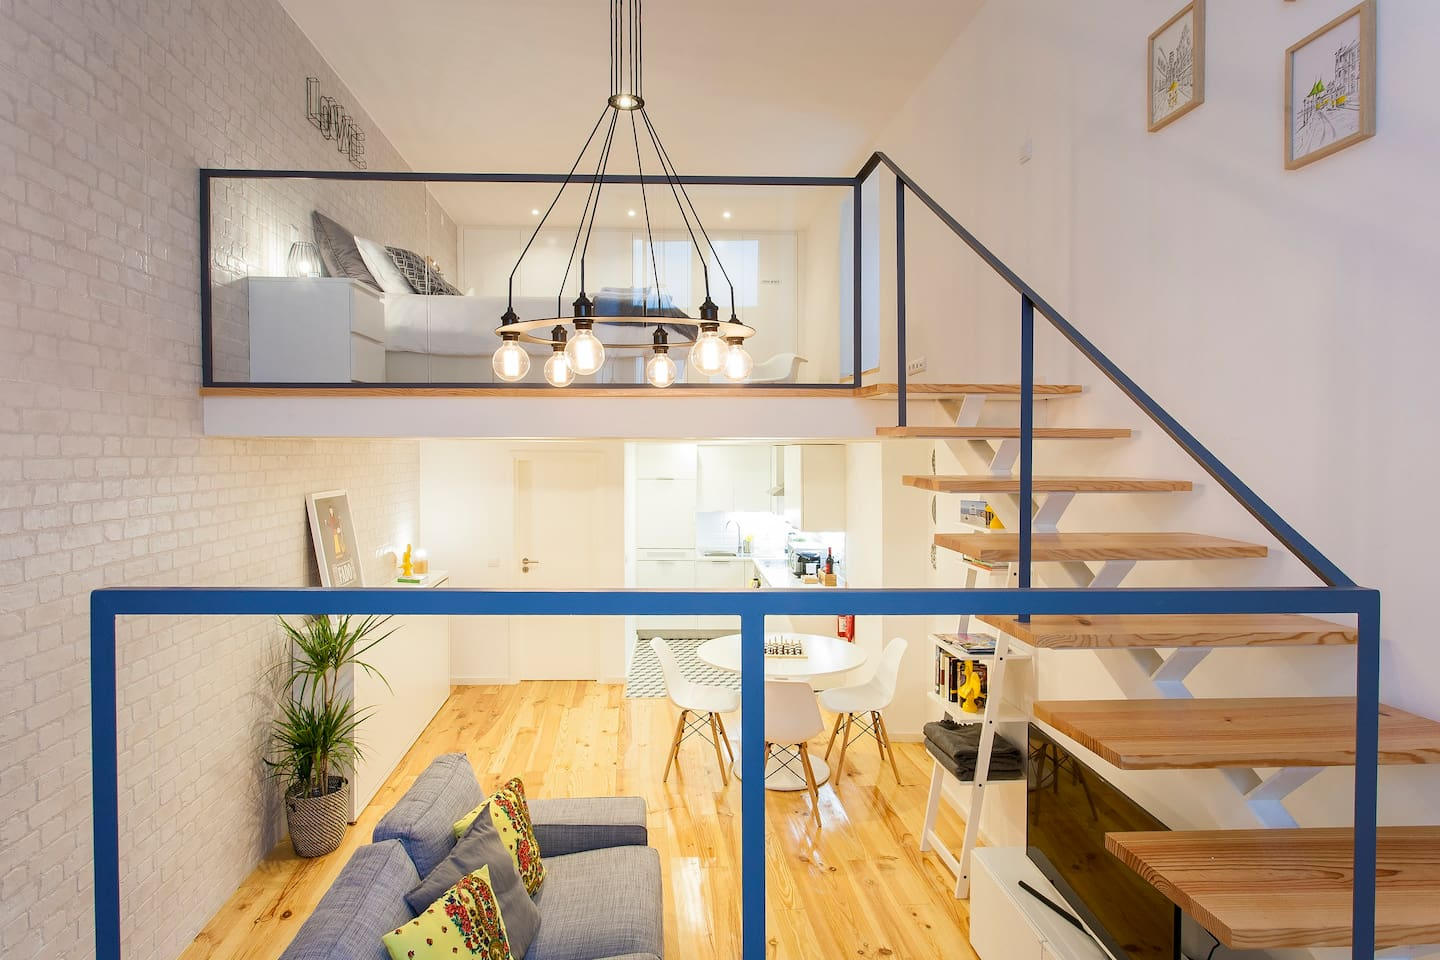 apartment in Lisbon, Rua da Bica Duarte Belo. Build by João and nicely designed by Joana.